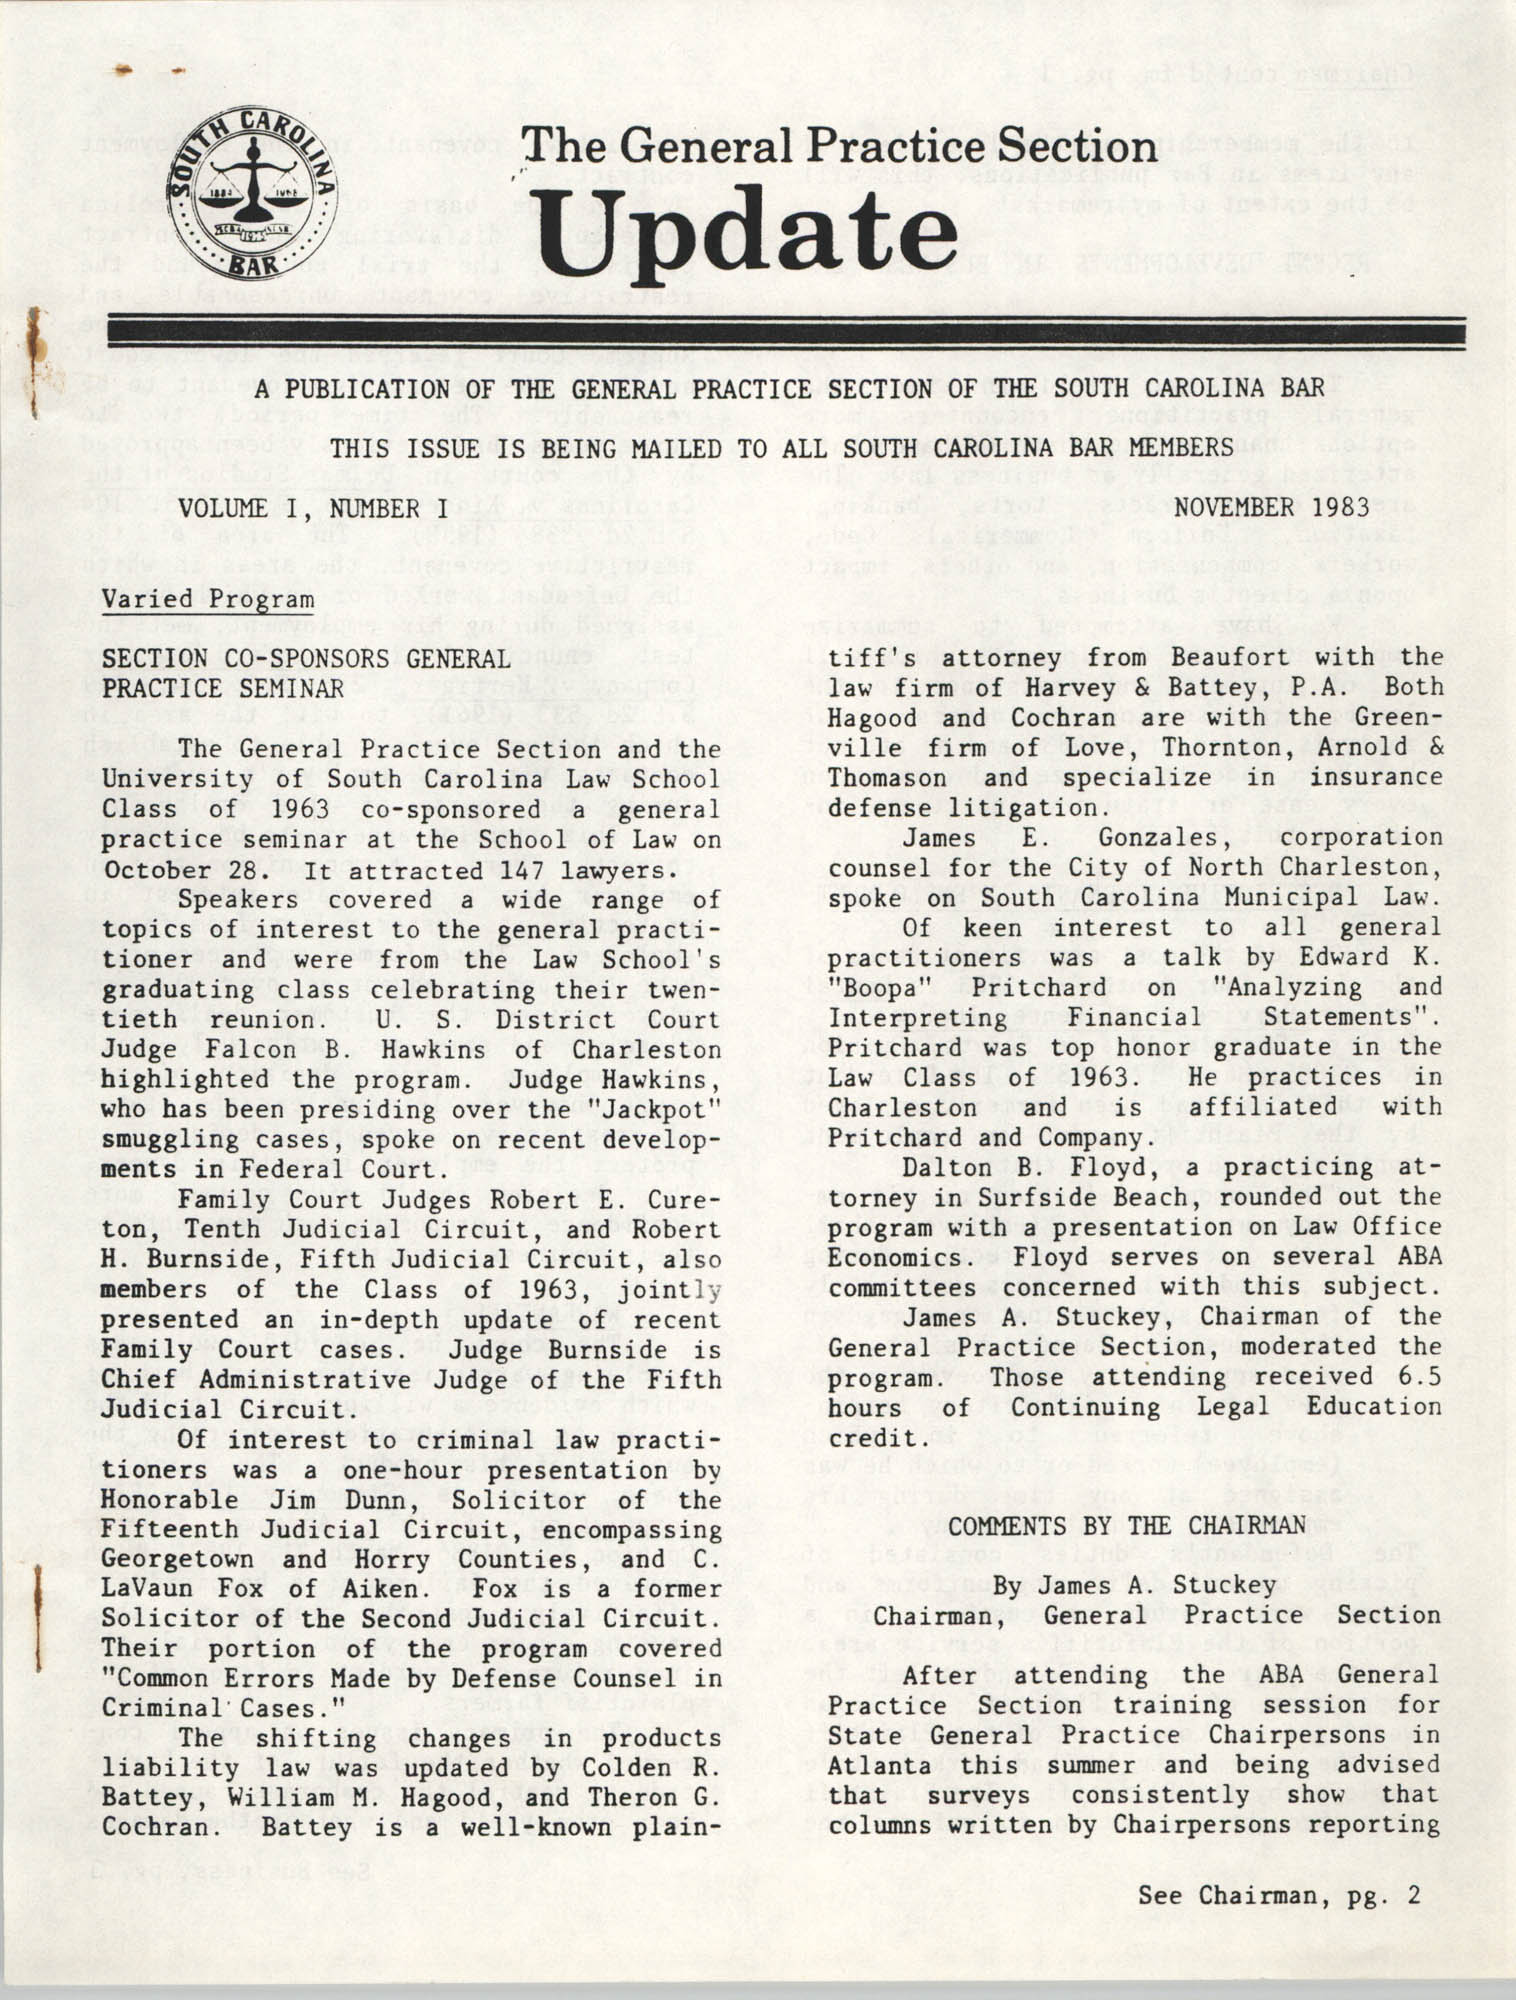 The General Practice Section Update, Vol. 1 No. 1, South Carolina Bar, November 1983, Page 1